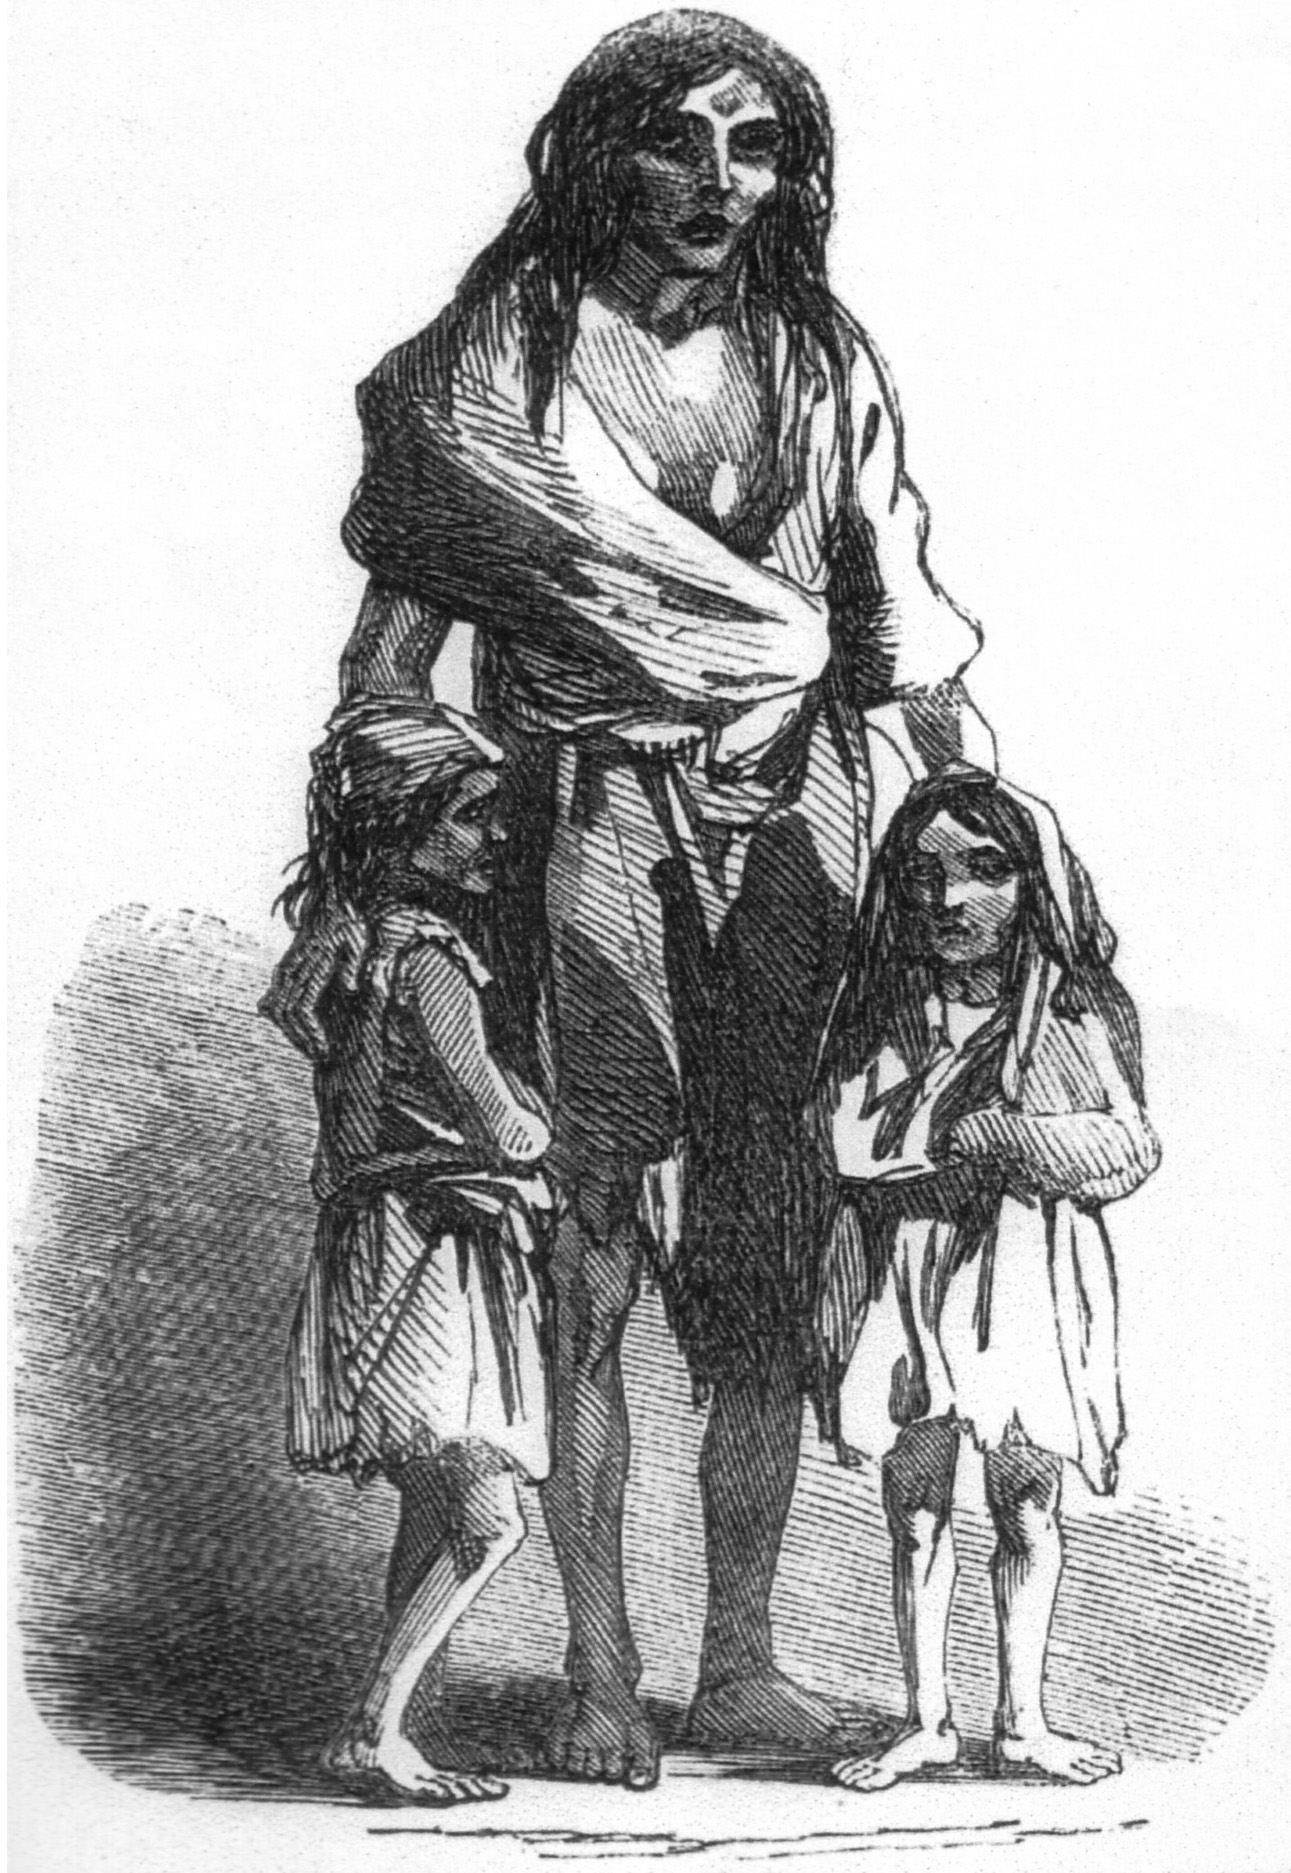 Bridget O'Donnell and her two children during the Great Hunger.